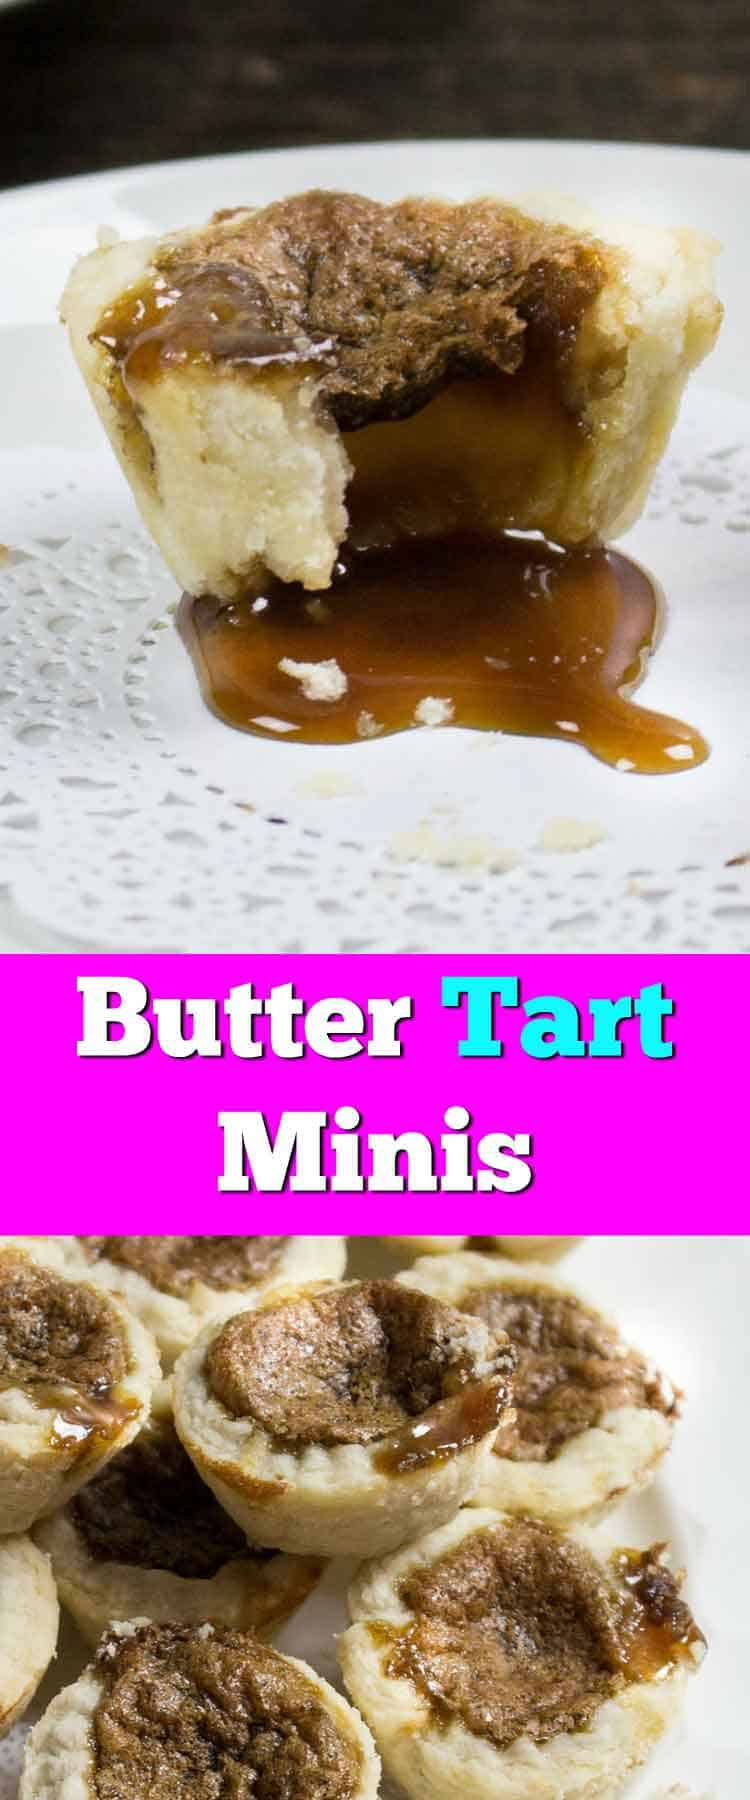 Homemade Butter Tarts | Grandma's Recipe Has Only 3 Ingredients!